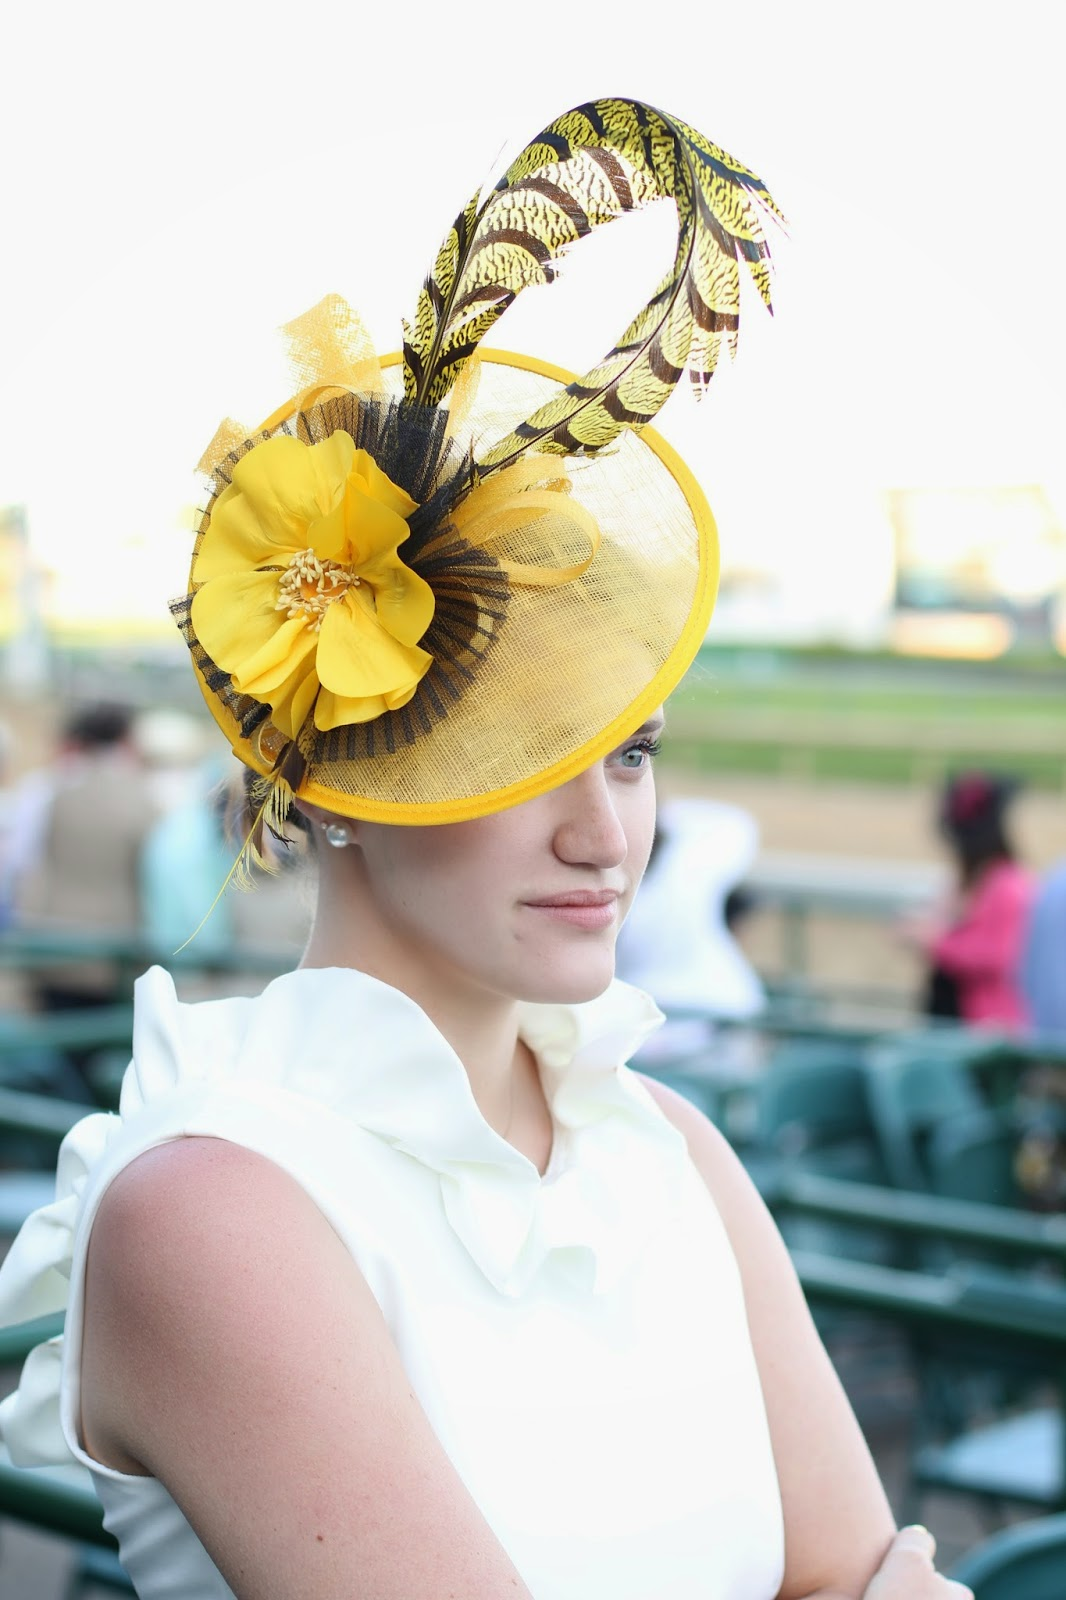 camilyn beth, headcani hat, headcandi fascinator, Kentucky derby hat